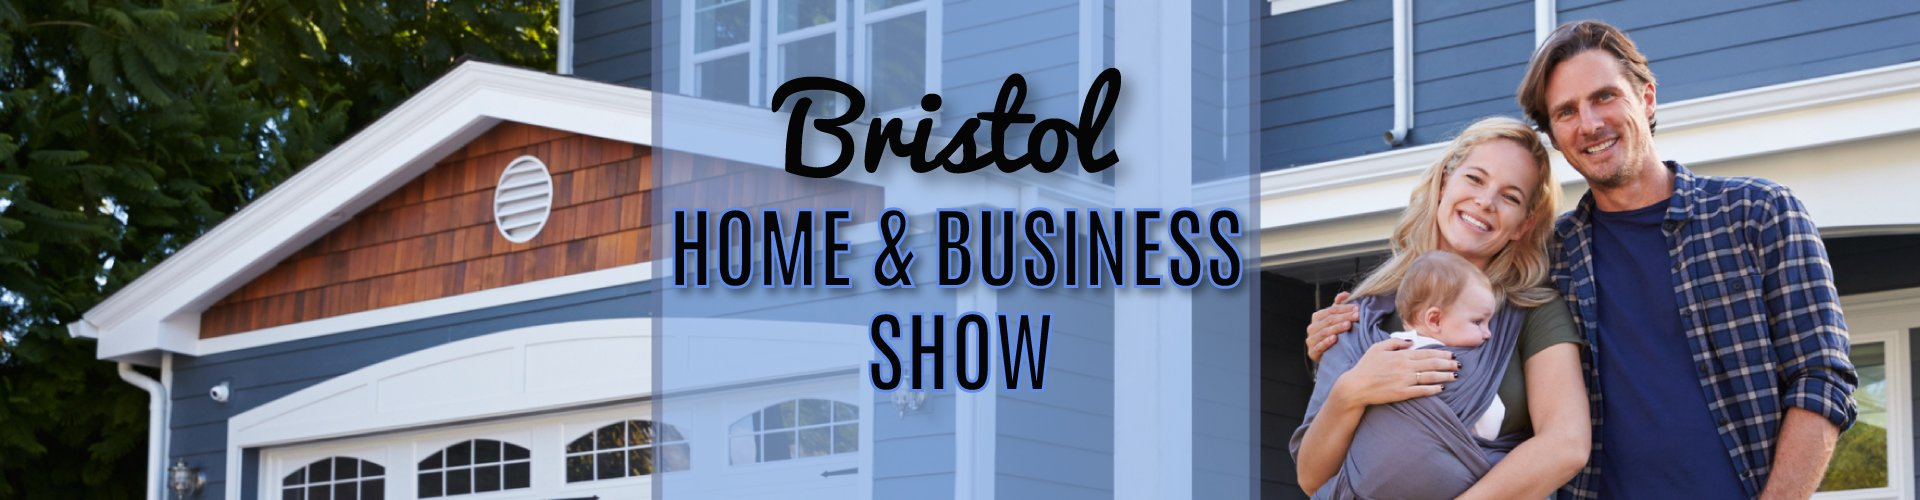 Trade Show Booth Hs Code : Bristol home business expo ct trade show jenks productions